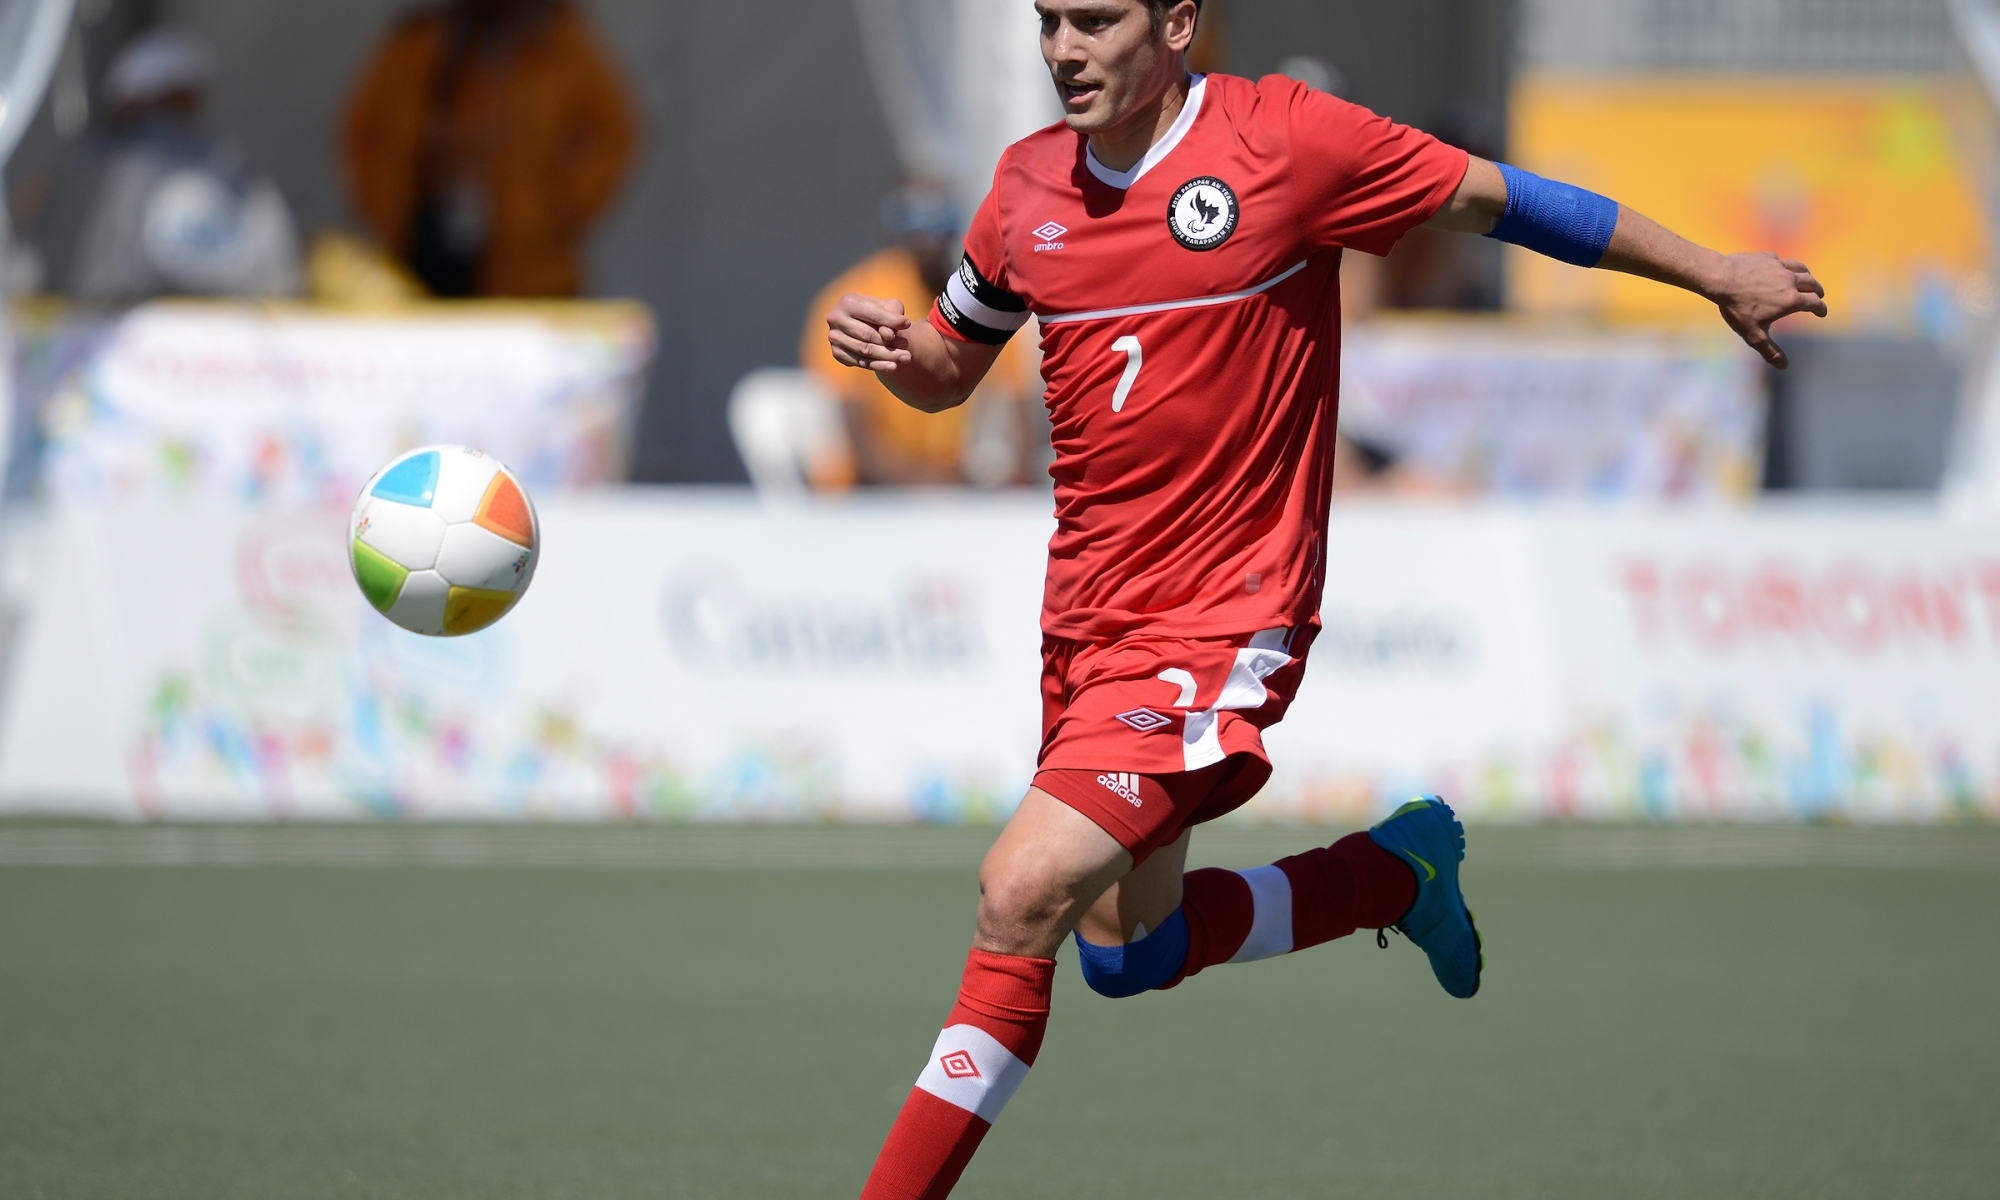 Athlete kicking a soccer ball